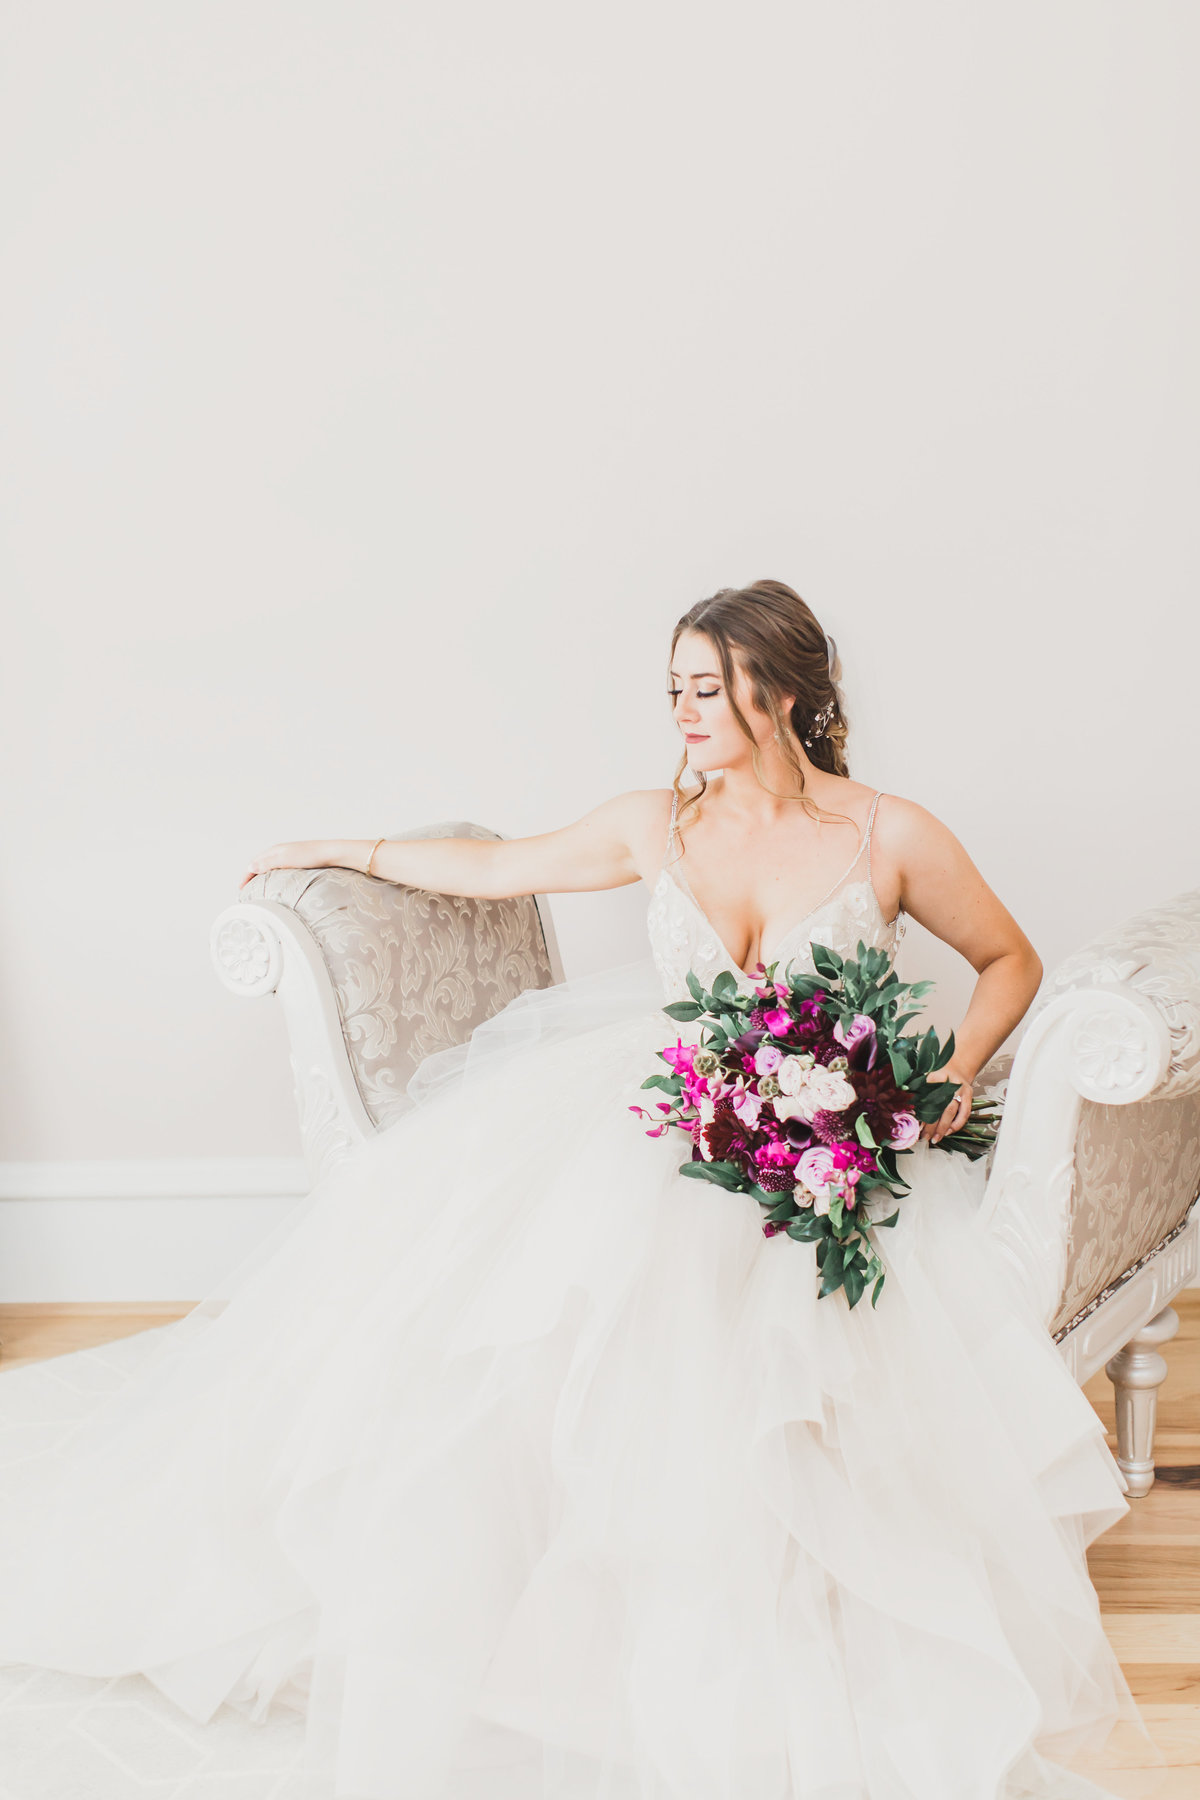 Walden Hall Wedding Photographer - M Harris Studios-216